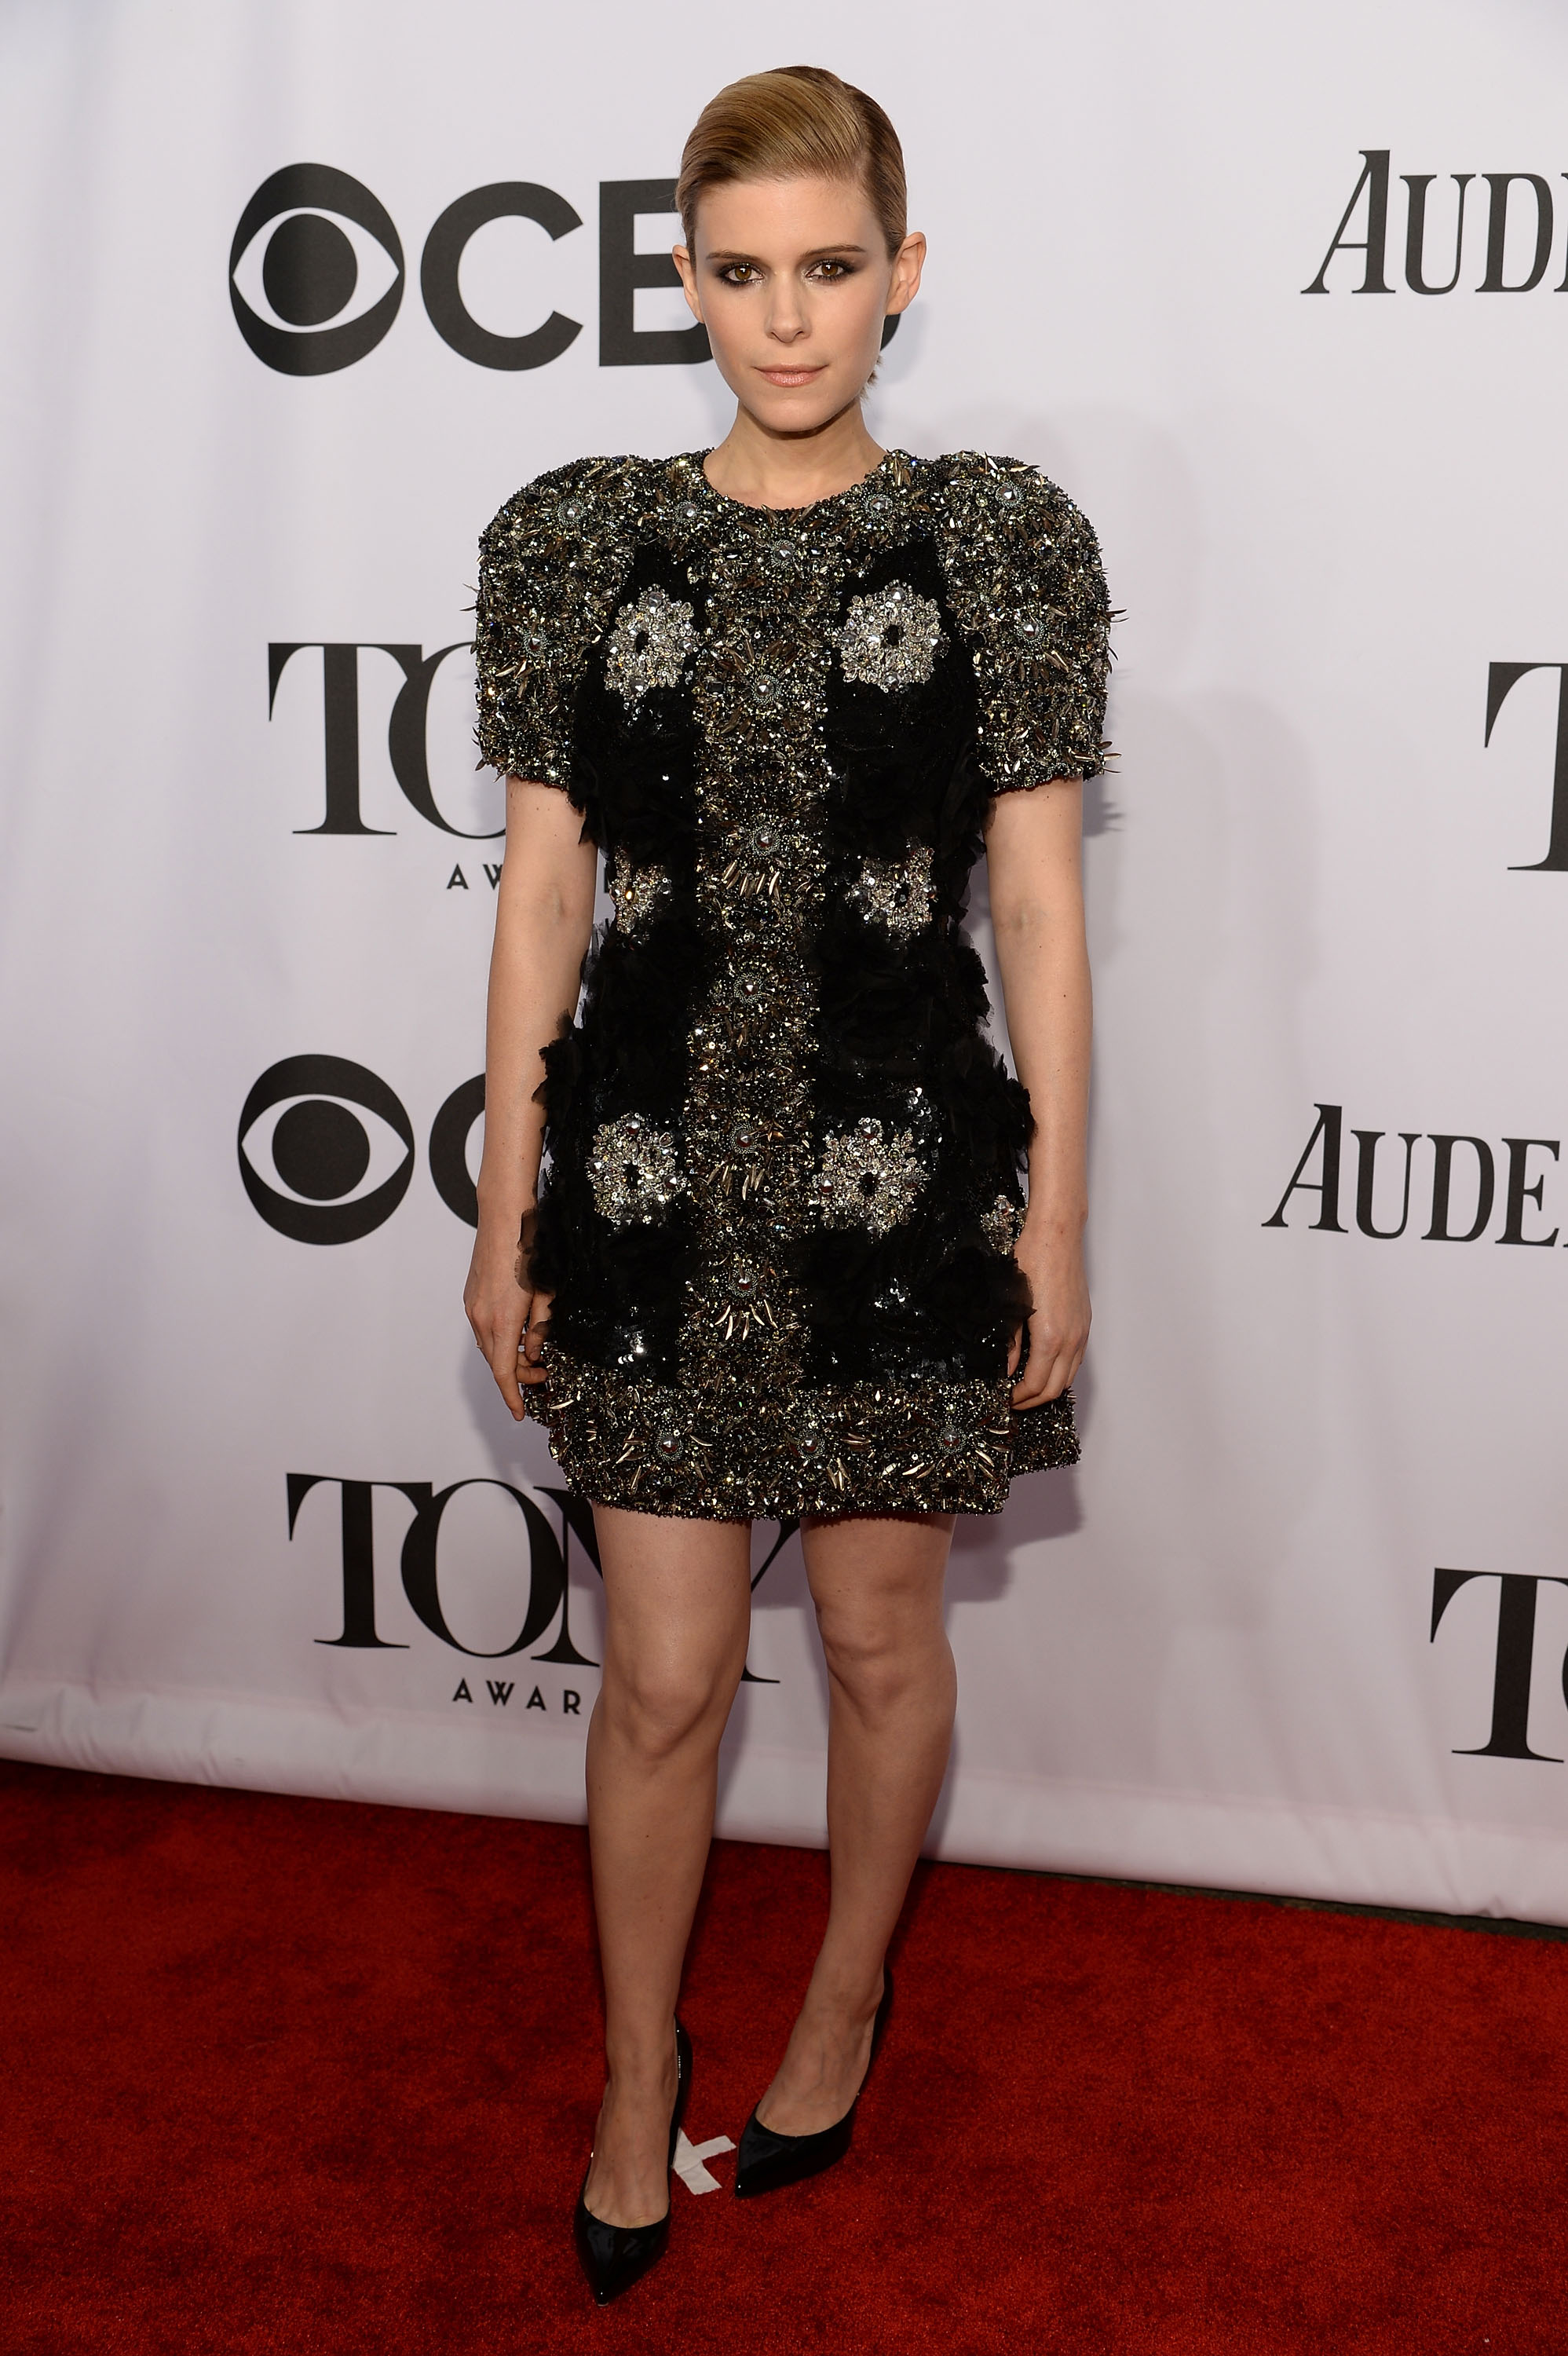 Actress Kate Mara attends the 68th Annual Tony Awards at Radio City Music Hall on June 8, 2014 in New York City.